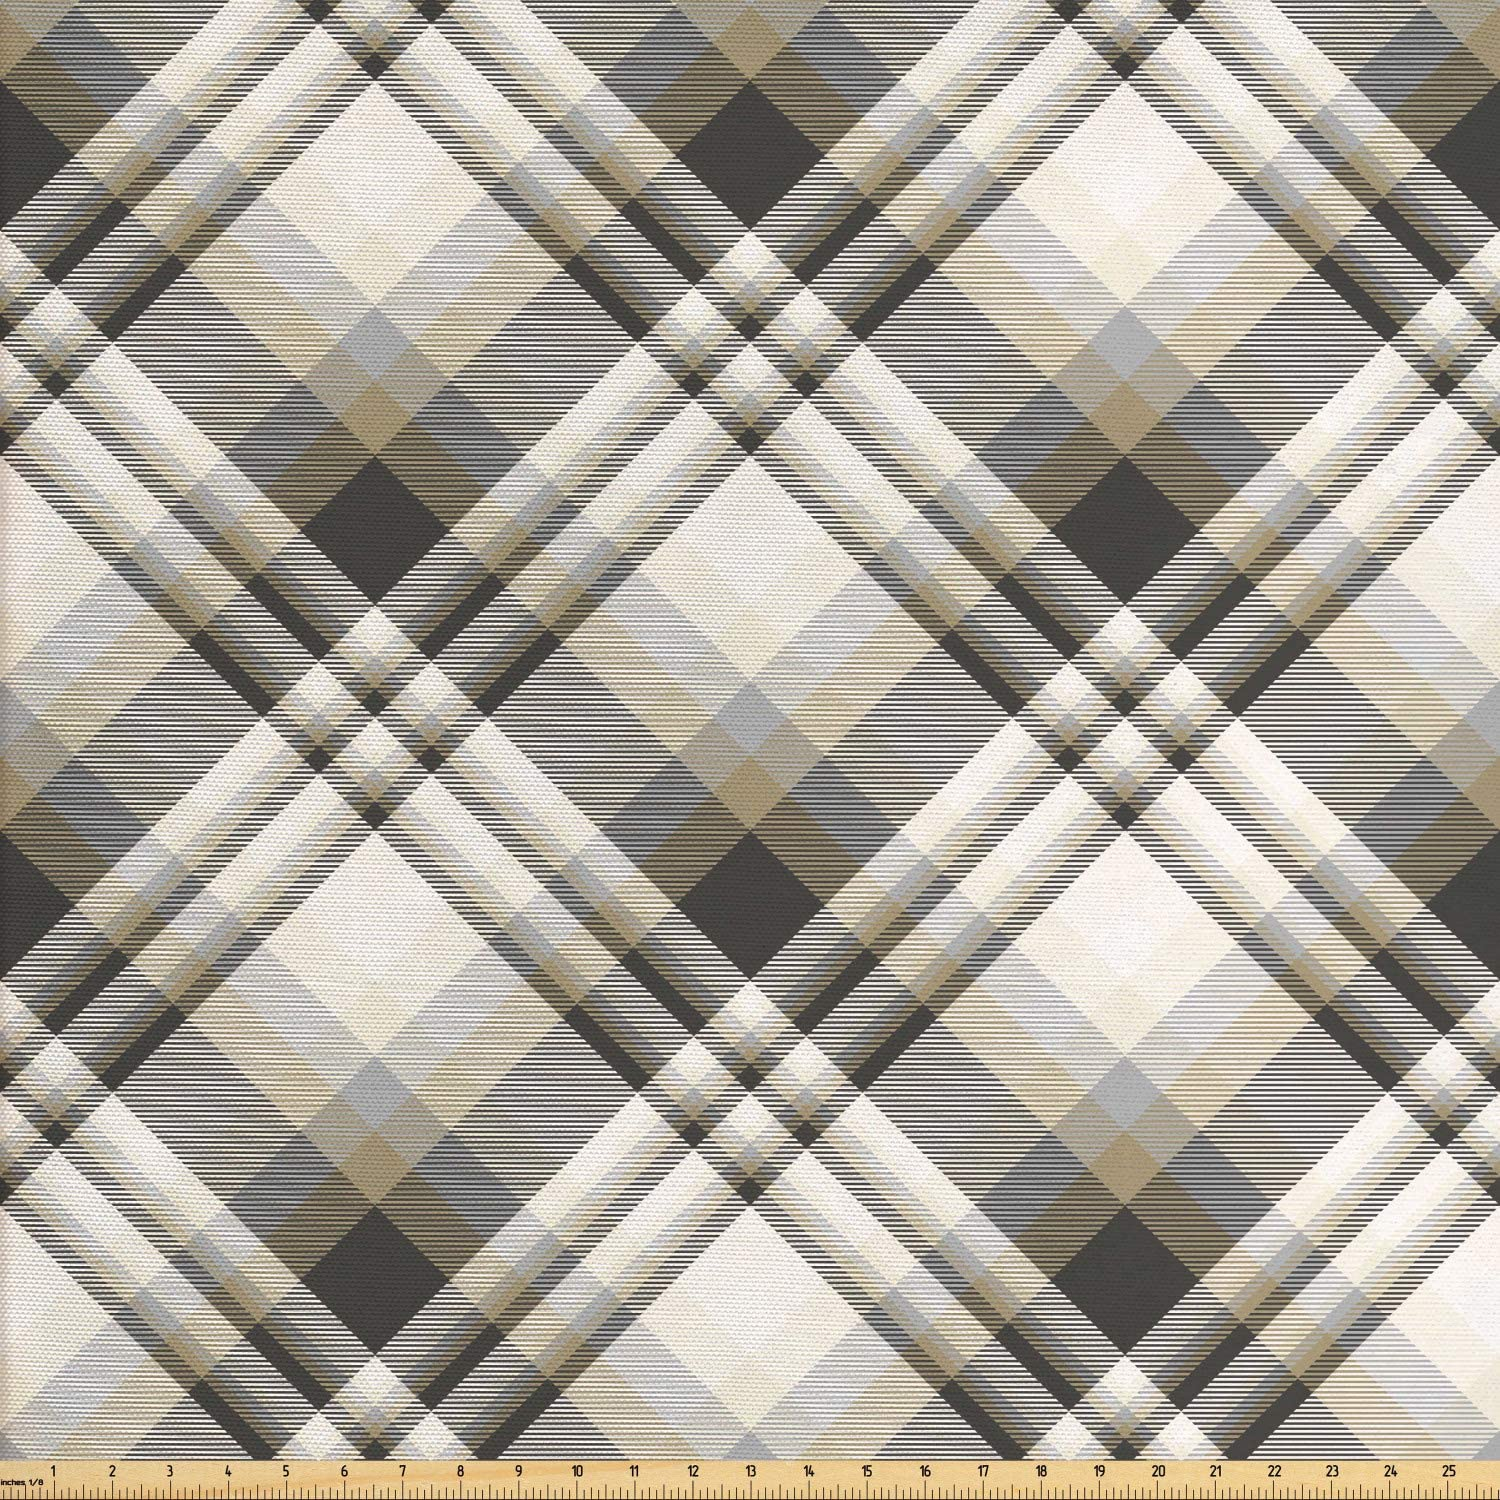 Lunarable Grey Plaid Fabric by The Yard, Diagonal Symmetrical Stripes Simplistic Illustration, Decorative Fabric for Upholstery and Home Accents, 3 Yards, Dark Tan Charcoal Grey